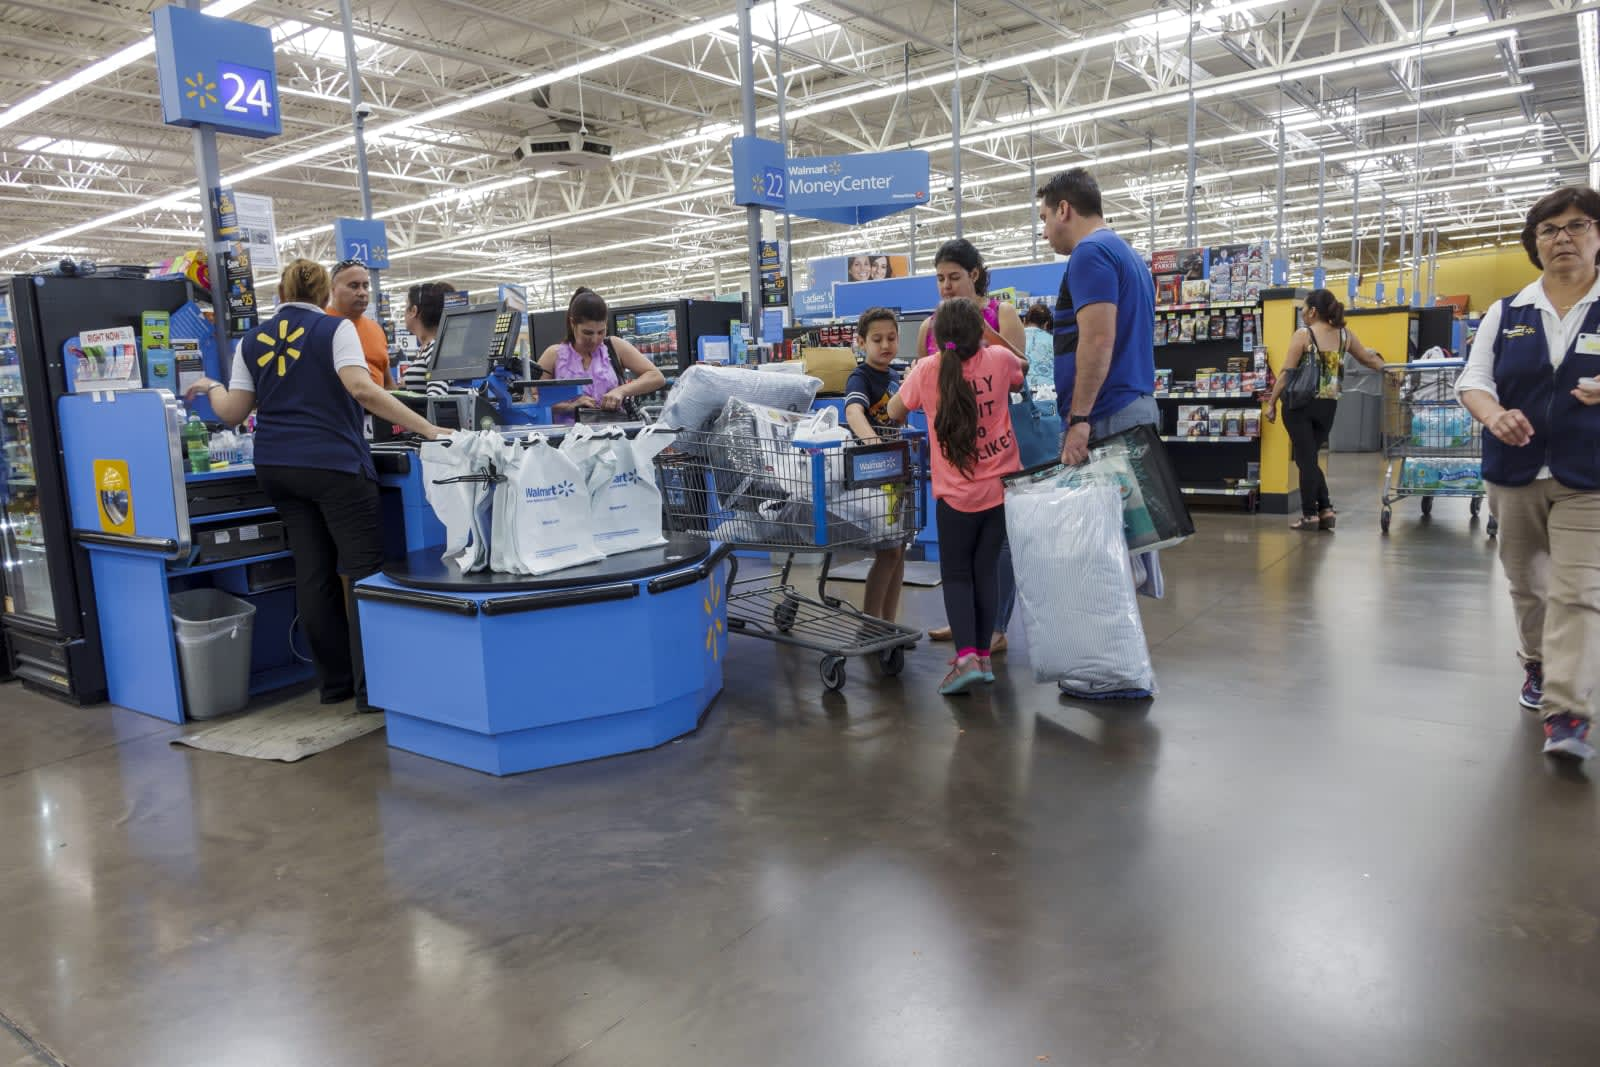 Walmart uses AI camera tech to track checkout theft at 1,000 stores